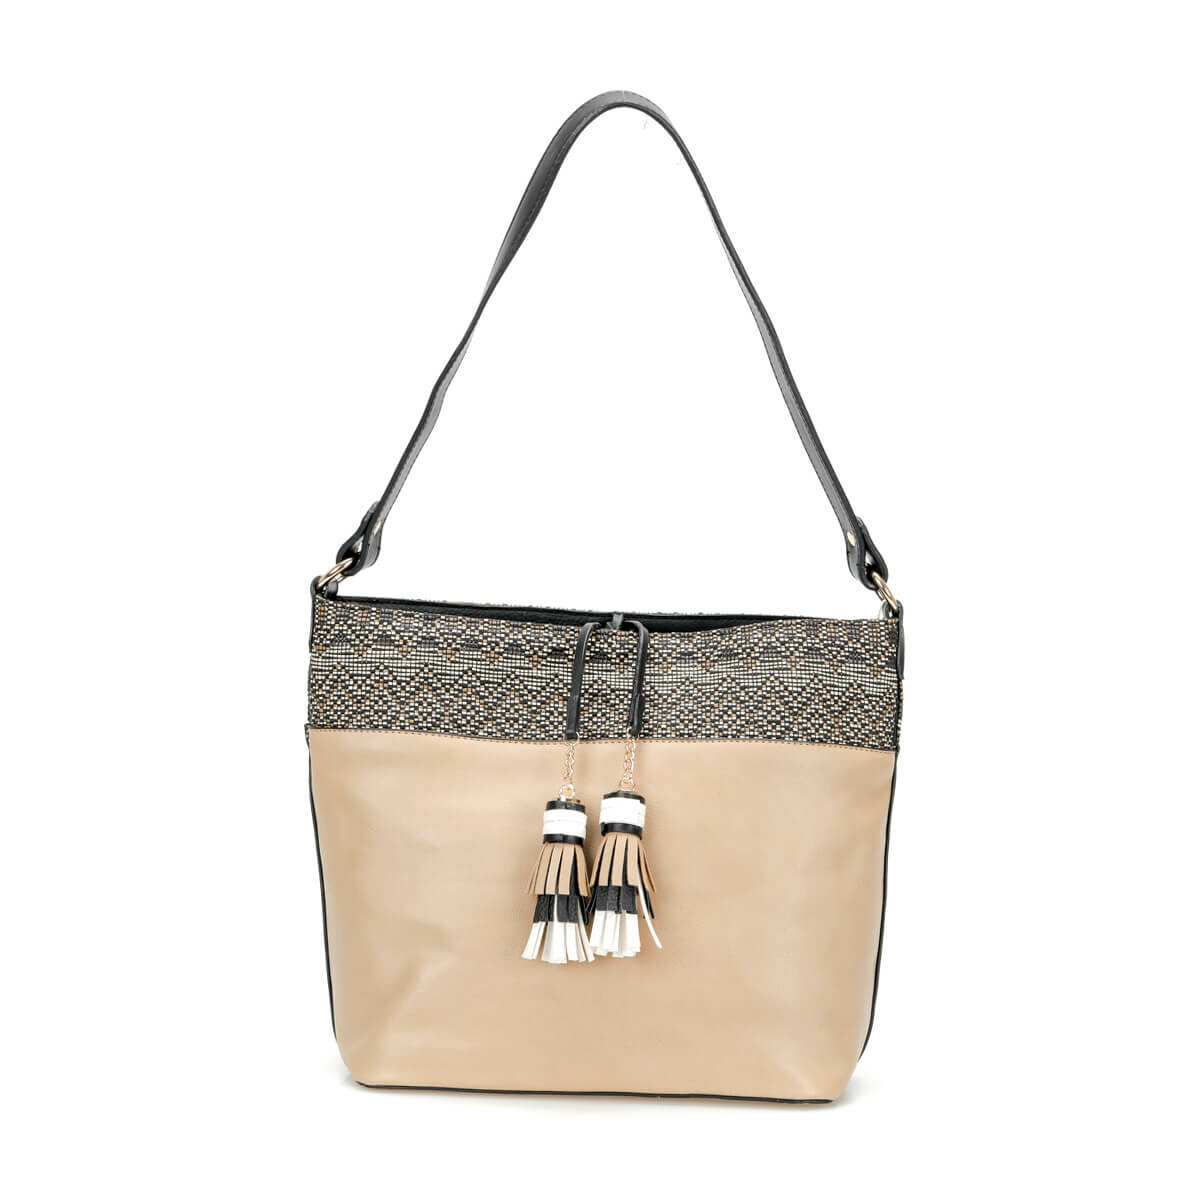 FLO WPRC1014 NUDE Women Shoulder Bag BUTIGO